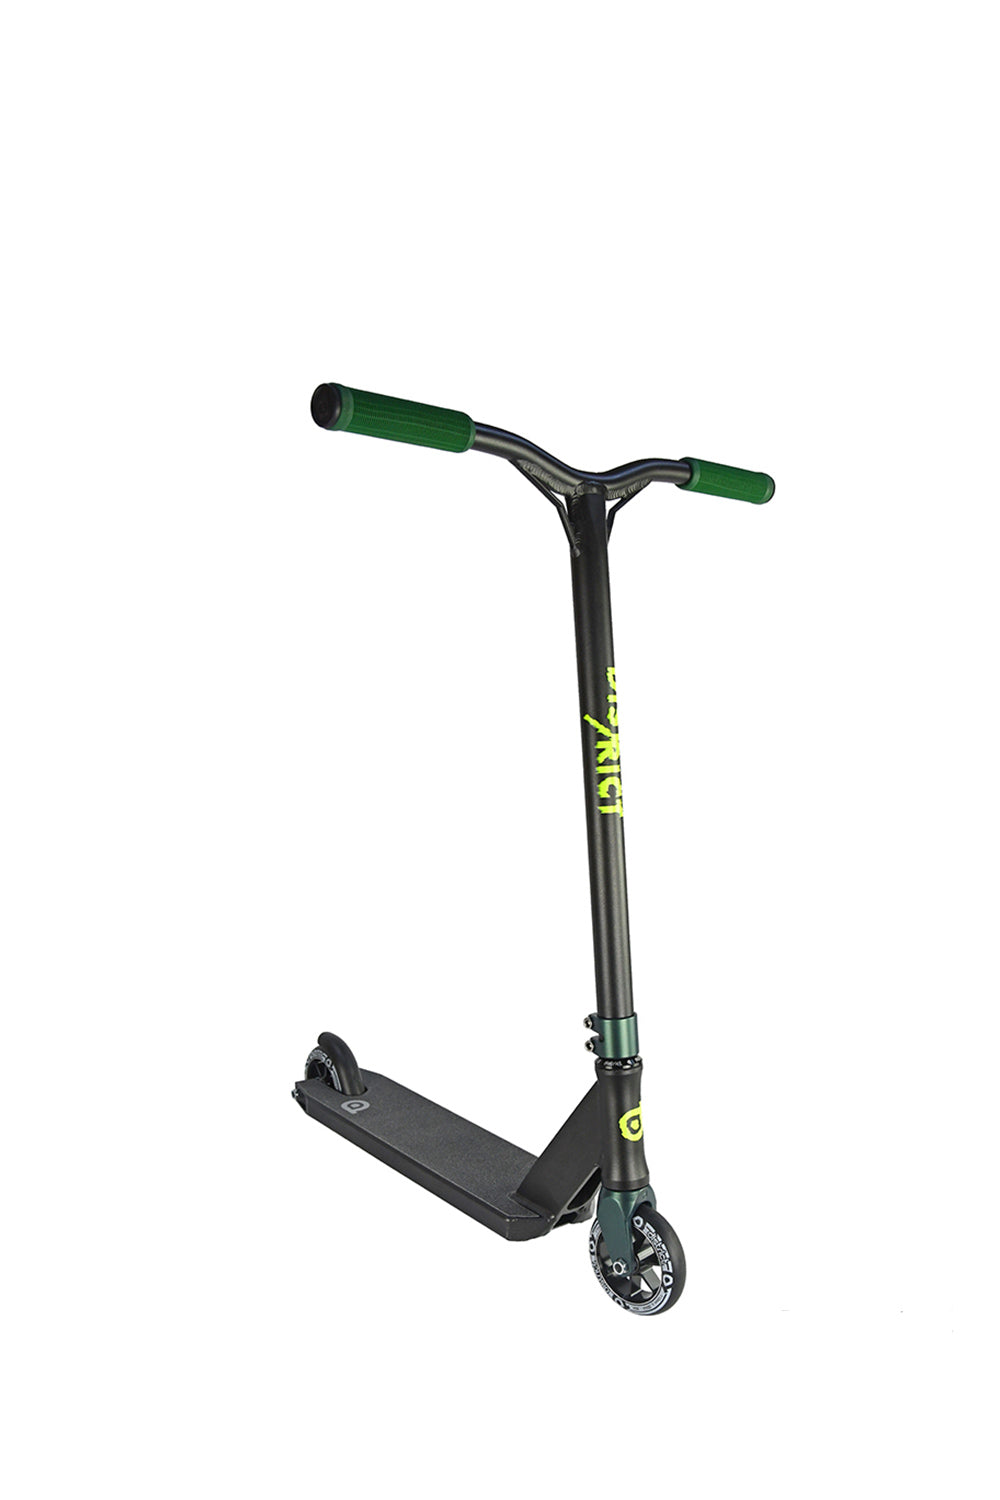 District C50 Series Complete Scooter